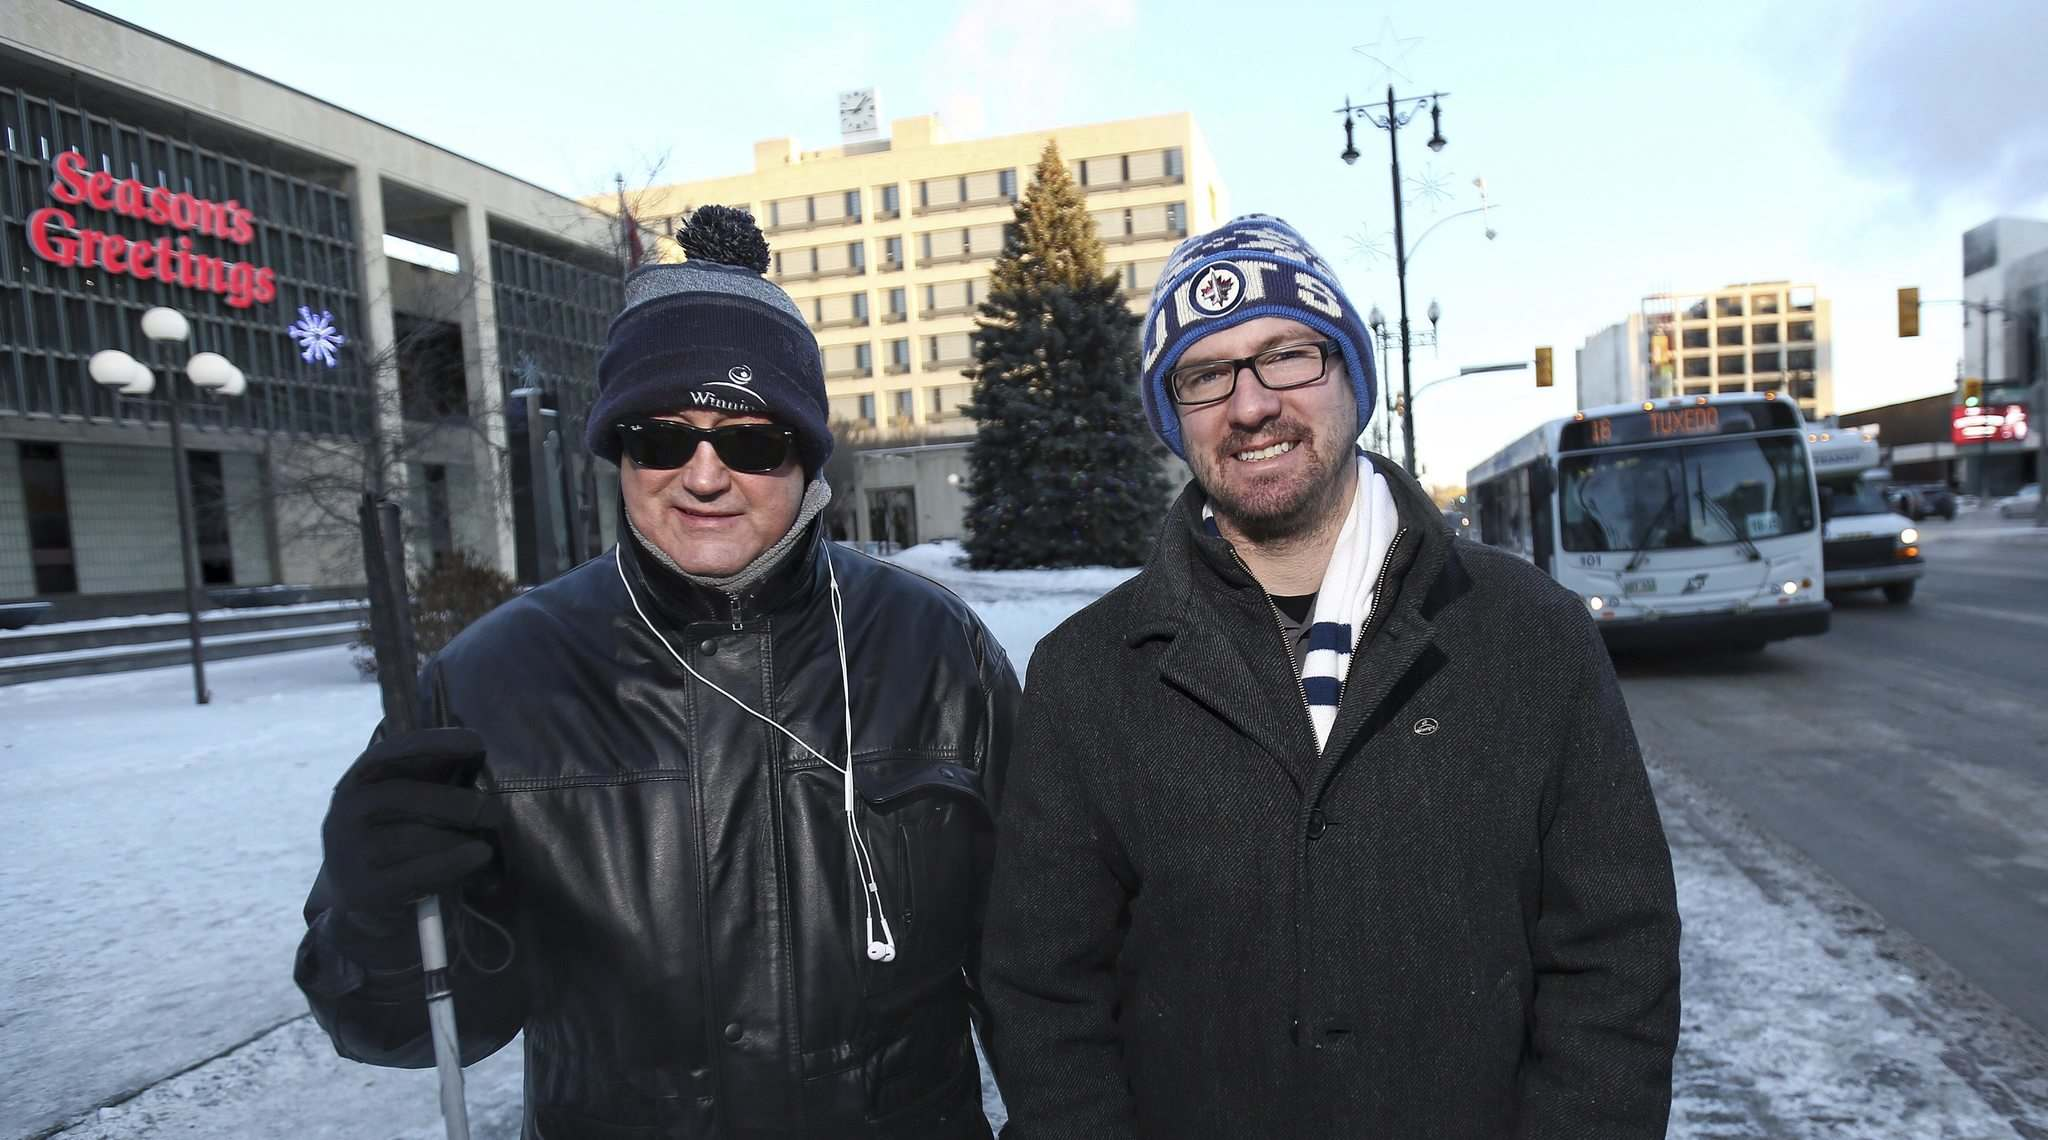 MIKE DEAL / WINNIPEG FREE PRESS</p><p>Coun. Ross Eadie (left) already buses to work every day, while Coun. Matt Allard set his own challenge for the month of January.</p>